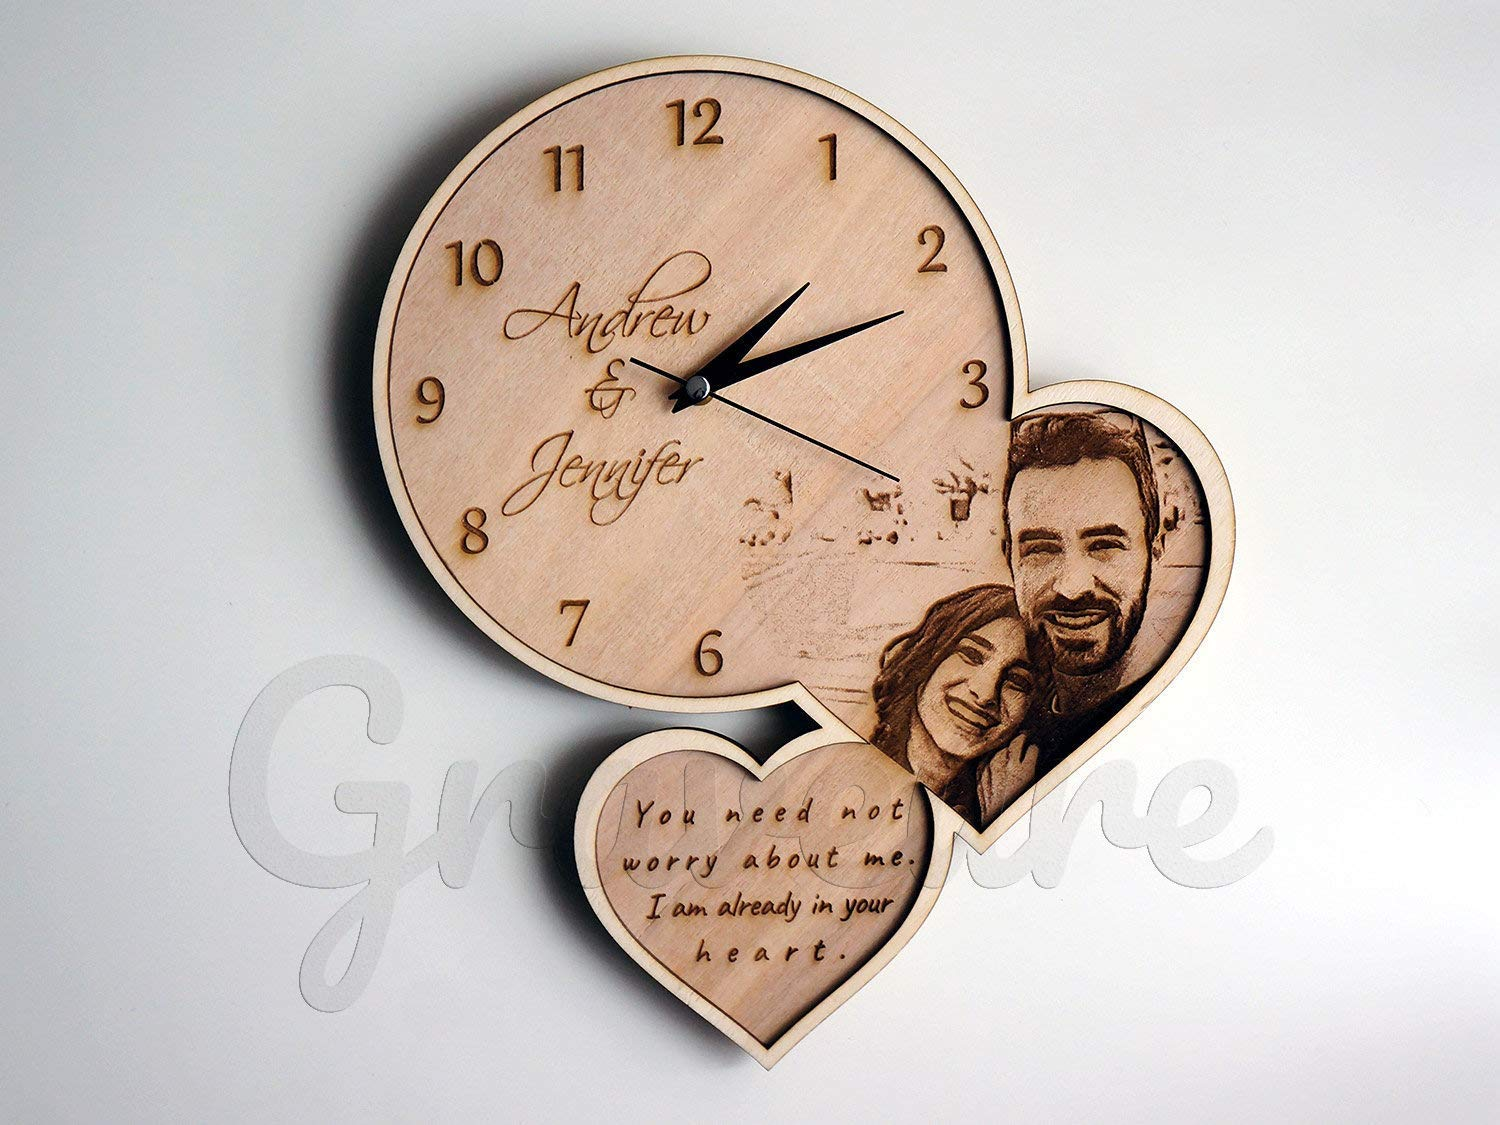 Graveure Wood Burned Picture, Your Custom Photo on Wood, Country Wall Art, Wooden Wall Clock, Customized Wall Clock